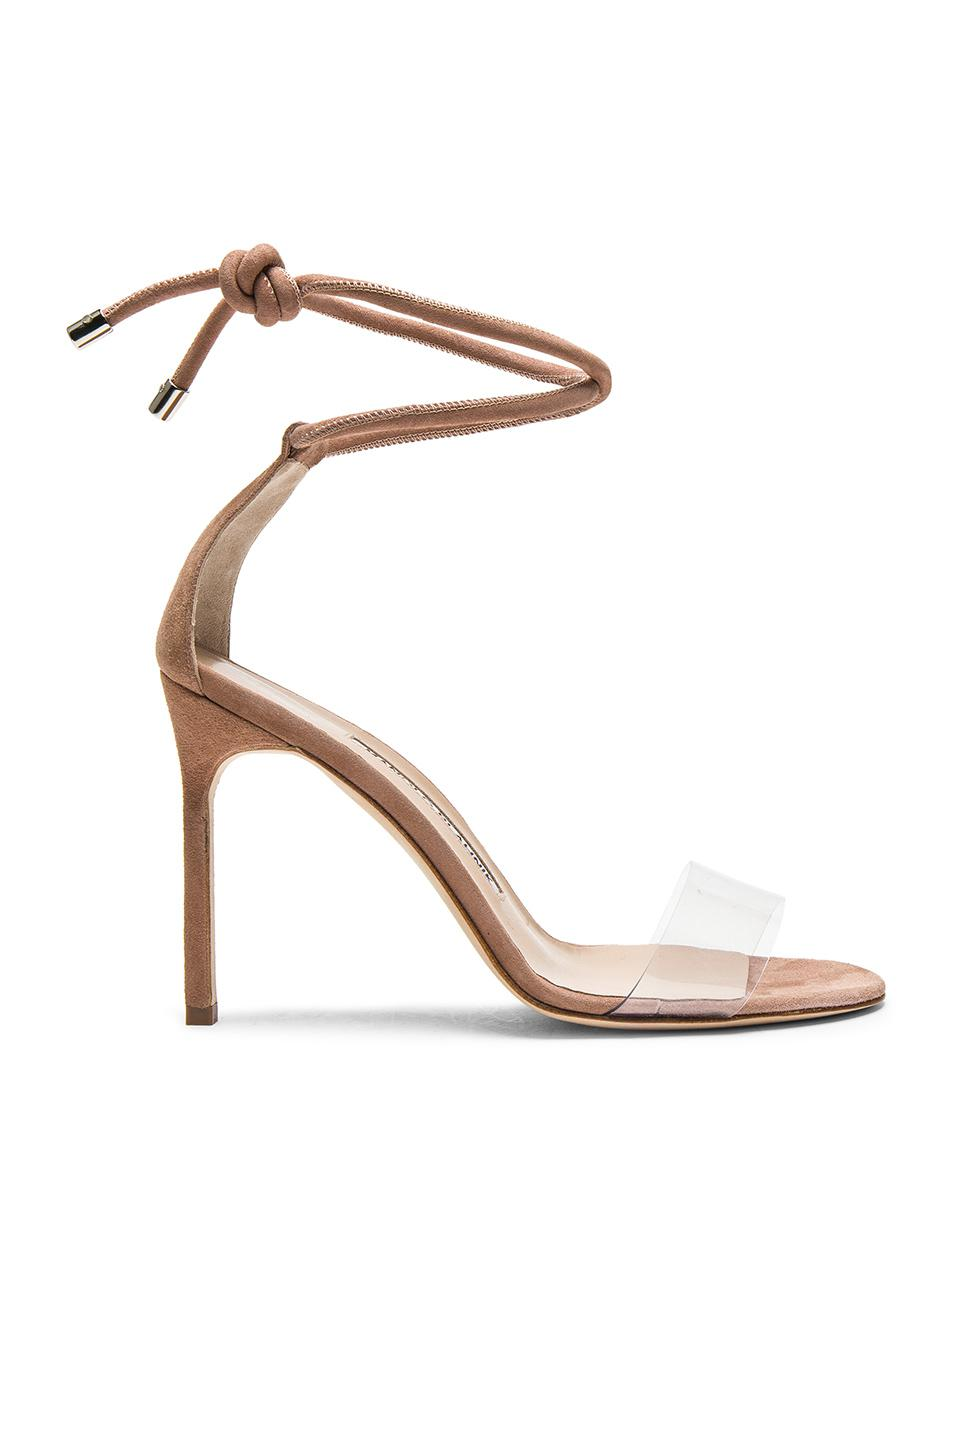 b2b2229174c Lyst - Manolo Blahnik 105 Suede Estro Sandals in Natural